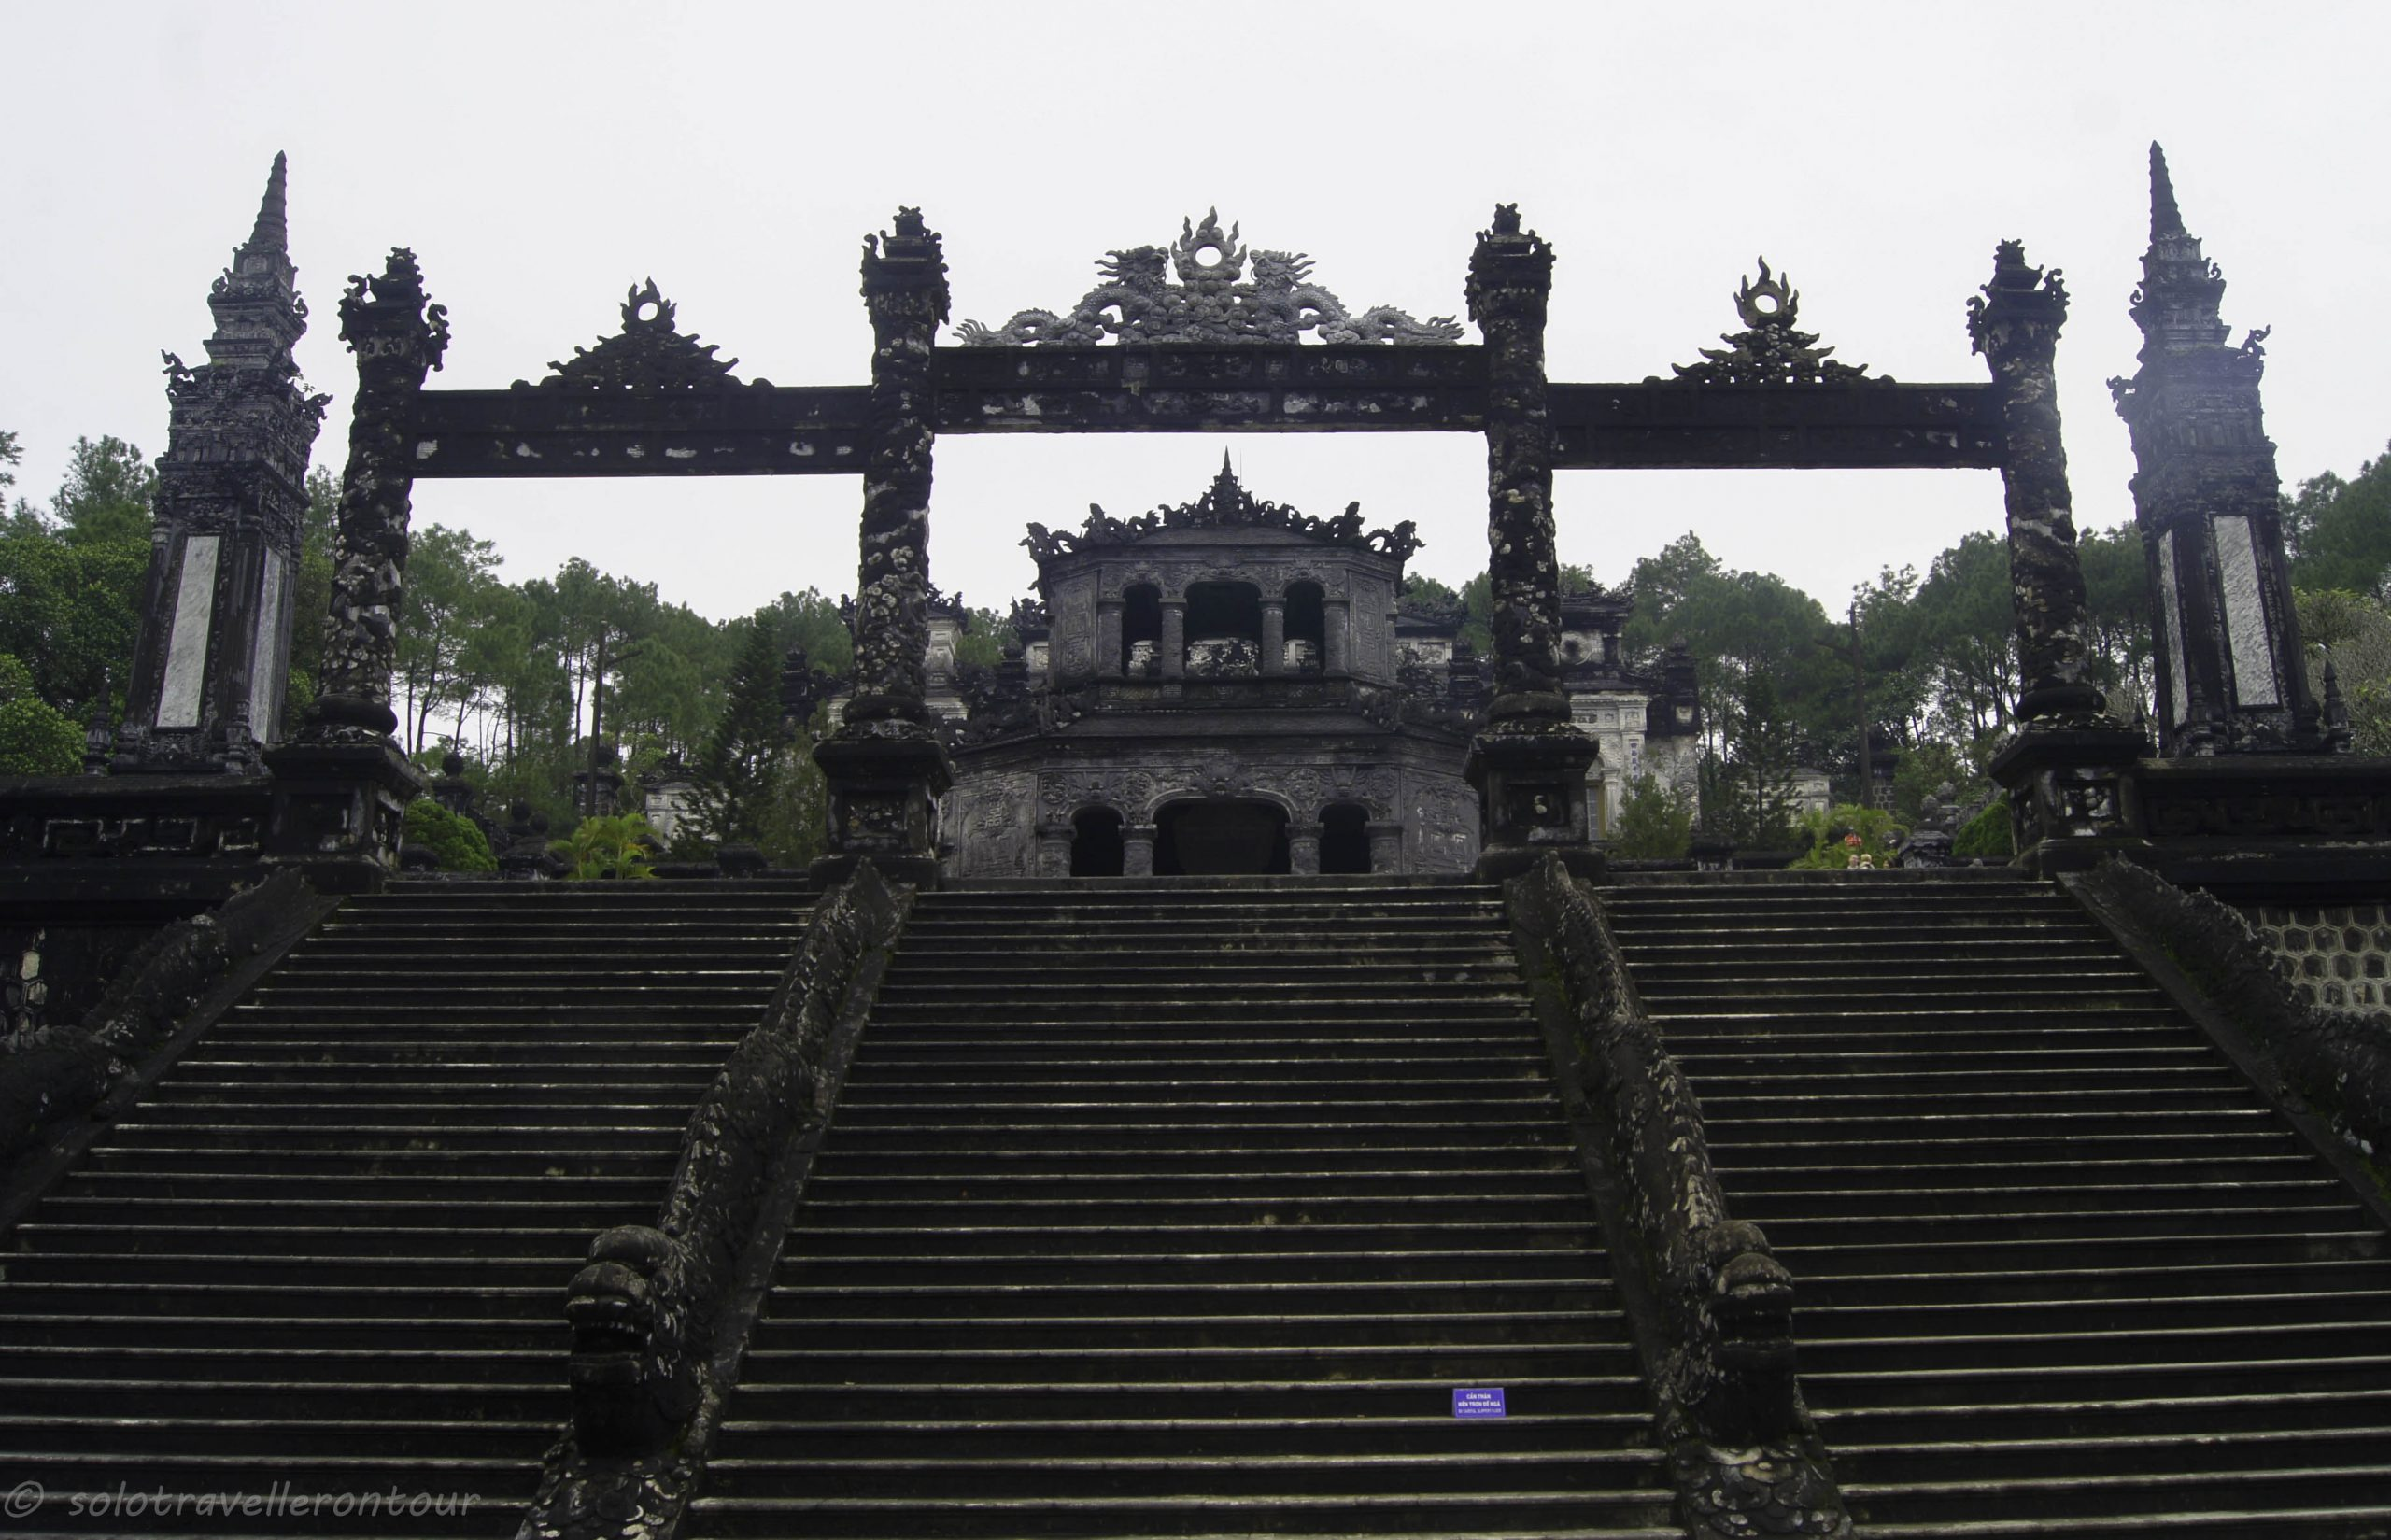 15. Hue – a place full of history